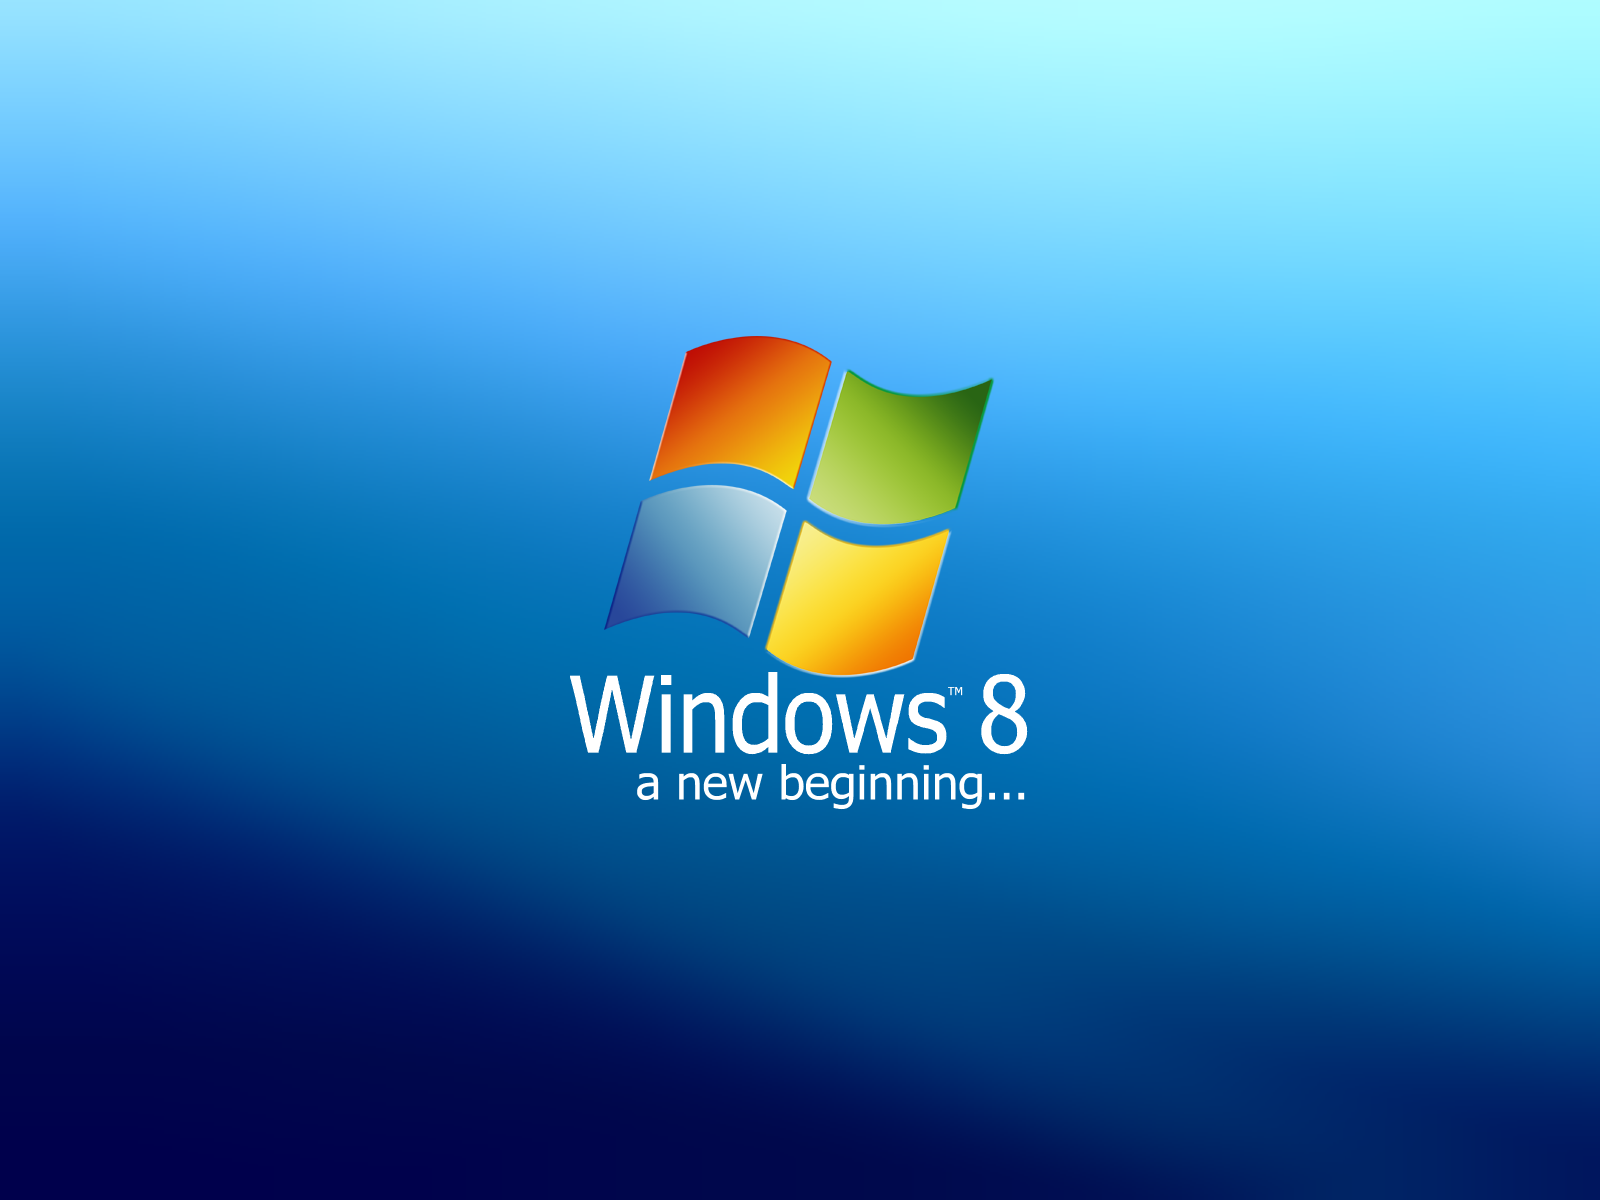 Windows 8 Desktop Wallpaper #30540 Hd Wallpapers